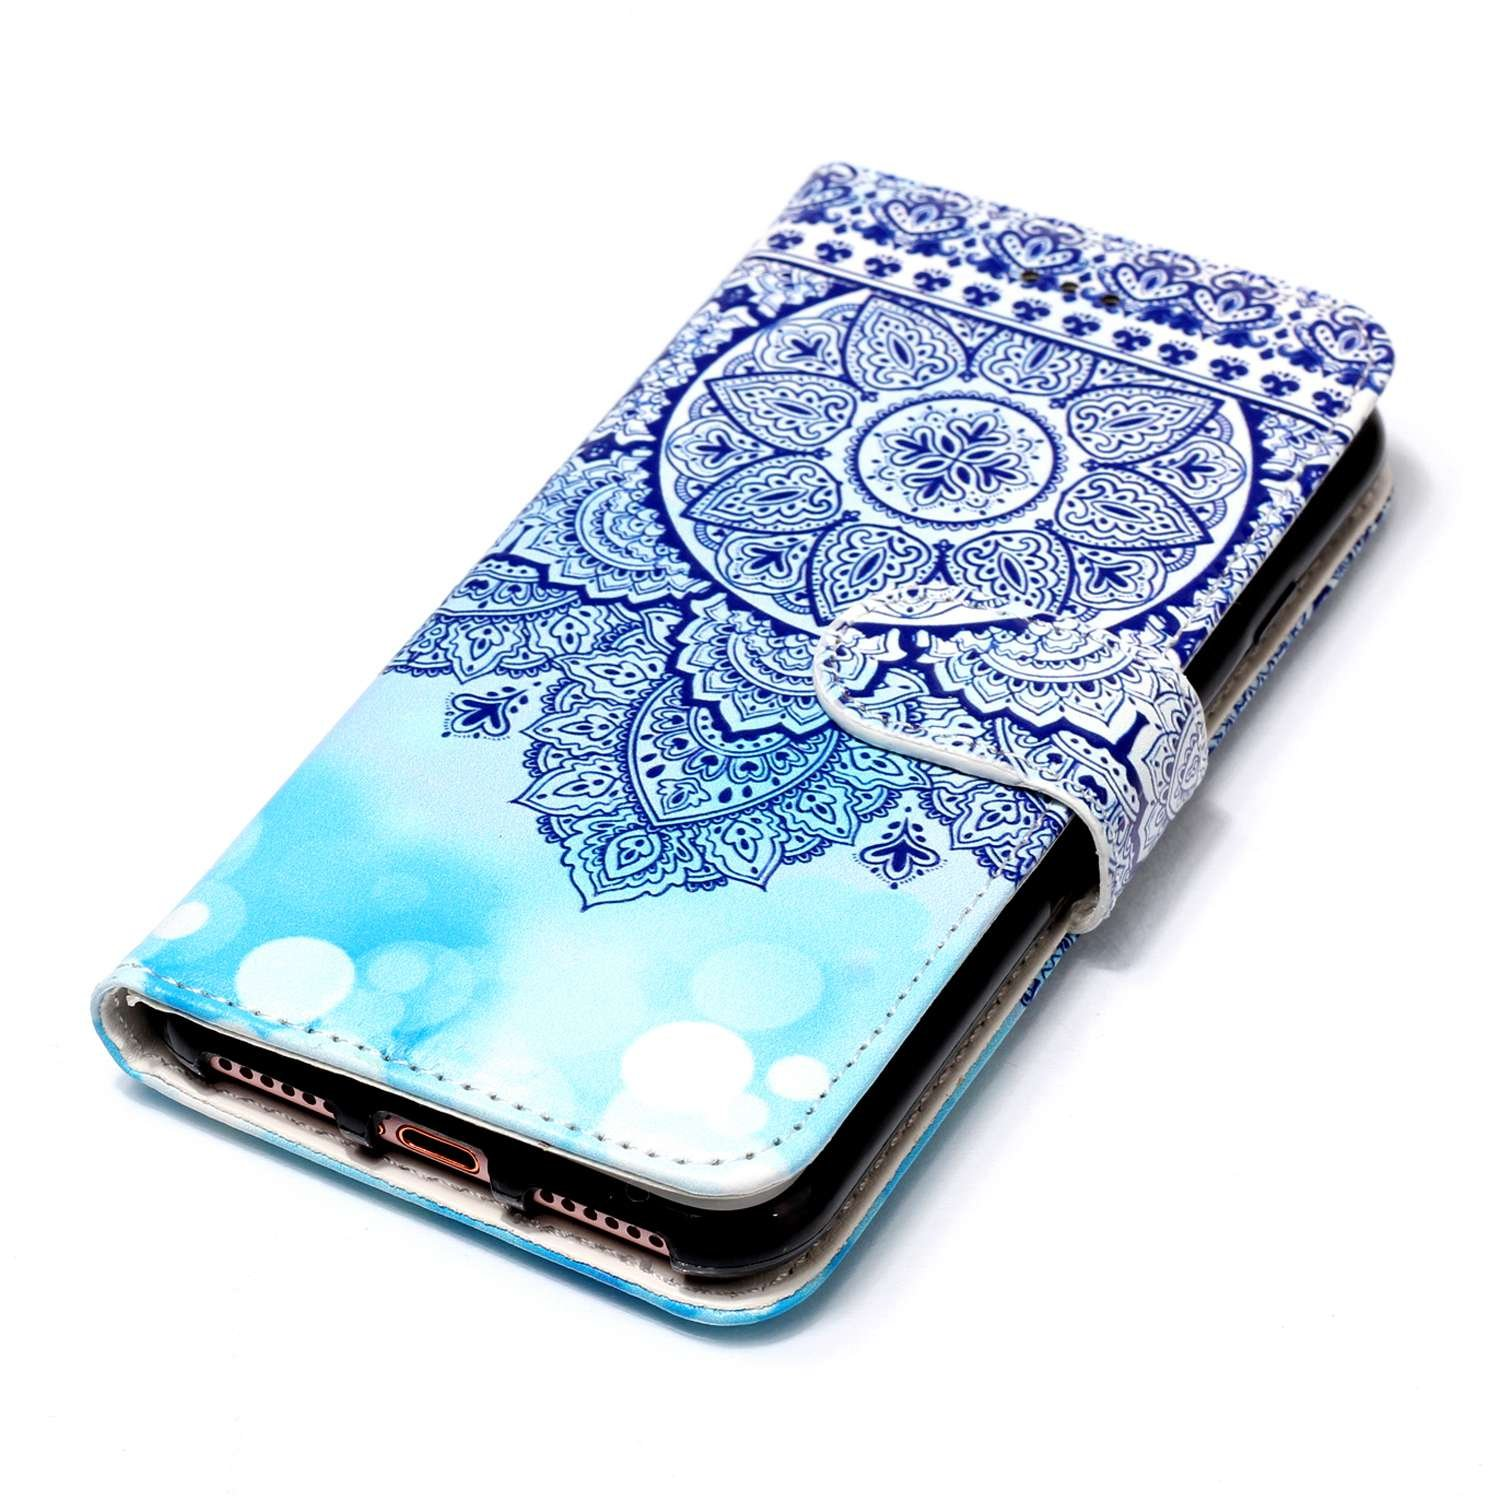 2017 Blue Totem 2016 // iPhone 8 Plus iPhone 8 Plus Case,iPhone 7 Plus Case,Suchling Totem Design Wallet Flip Magnetic Closure Embossed Case PU Leather Stand Credit Card ID Holders Book Style Skin for iPhone 7 Plus